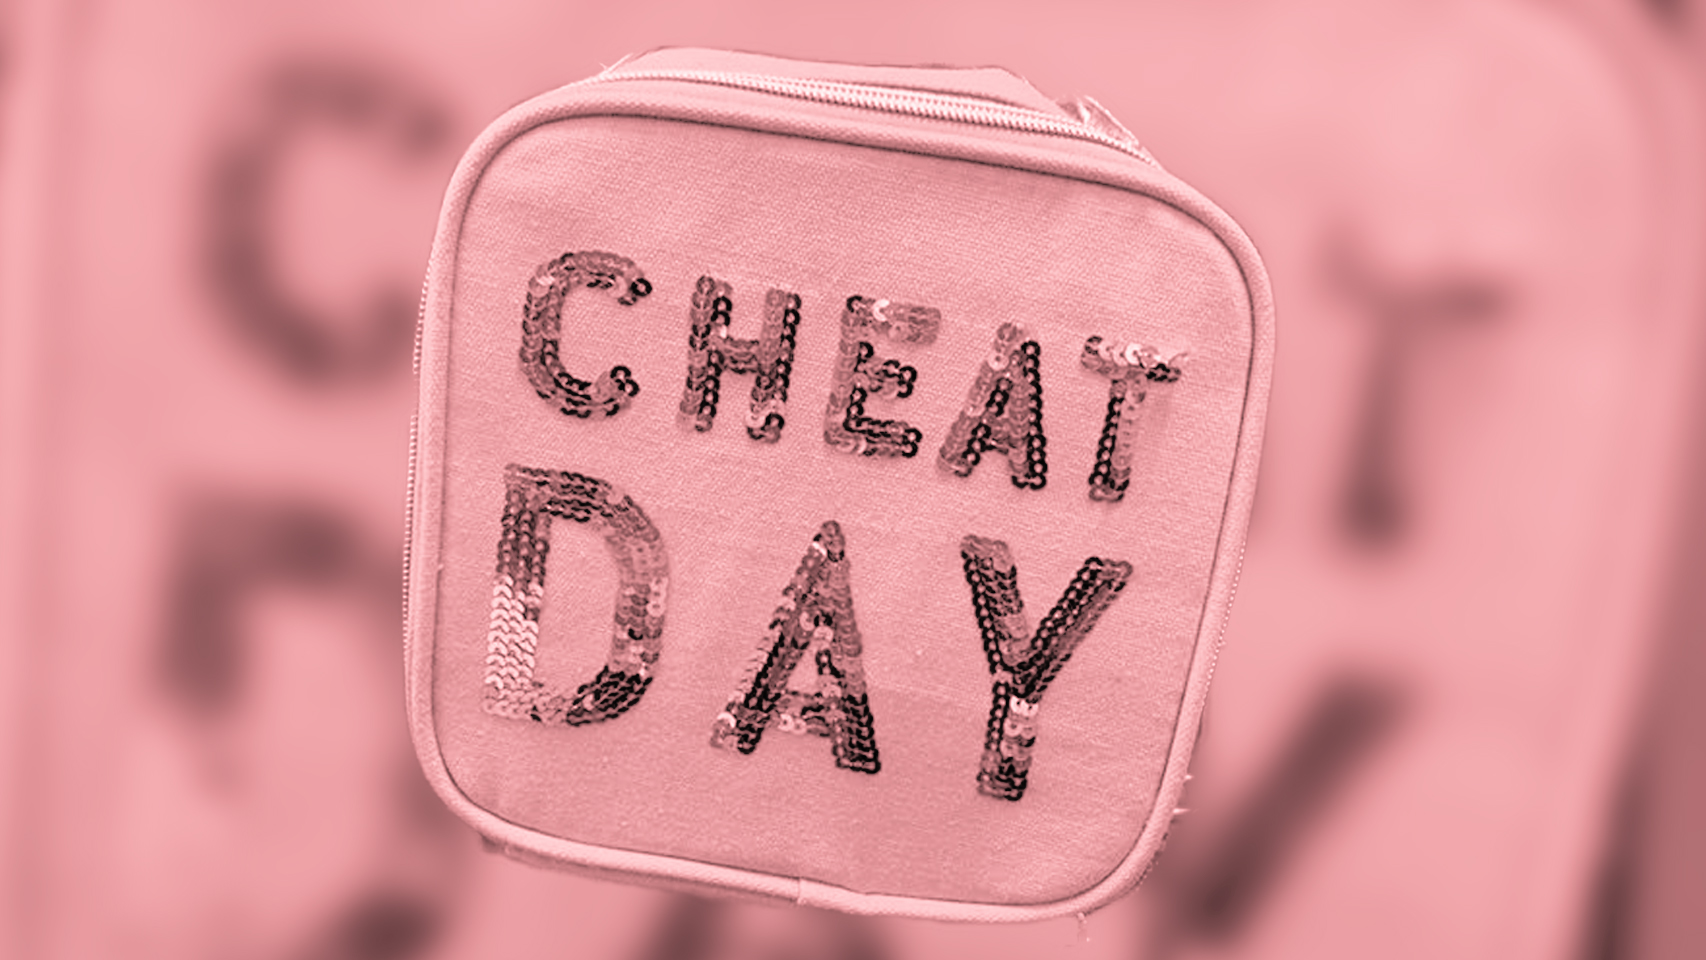 Mom Blogger Calls Out 'Cheat Day' Lunchbox That Sends a Toxic Message to Girls